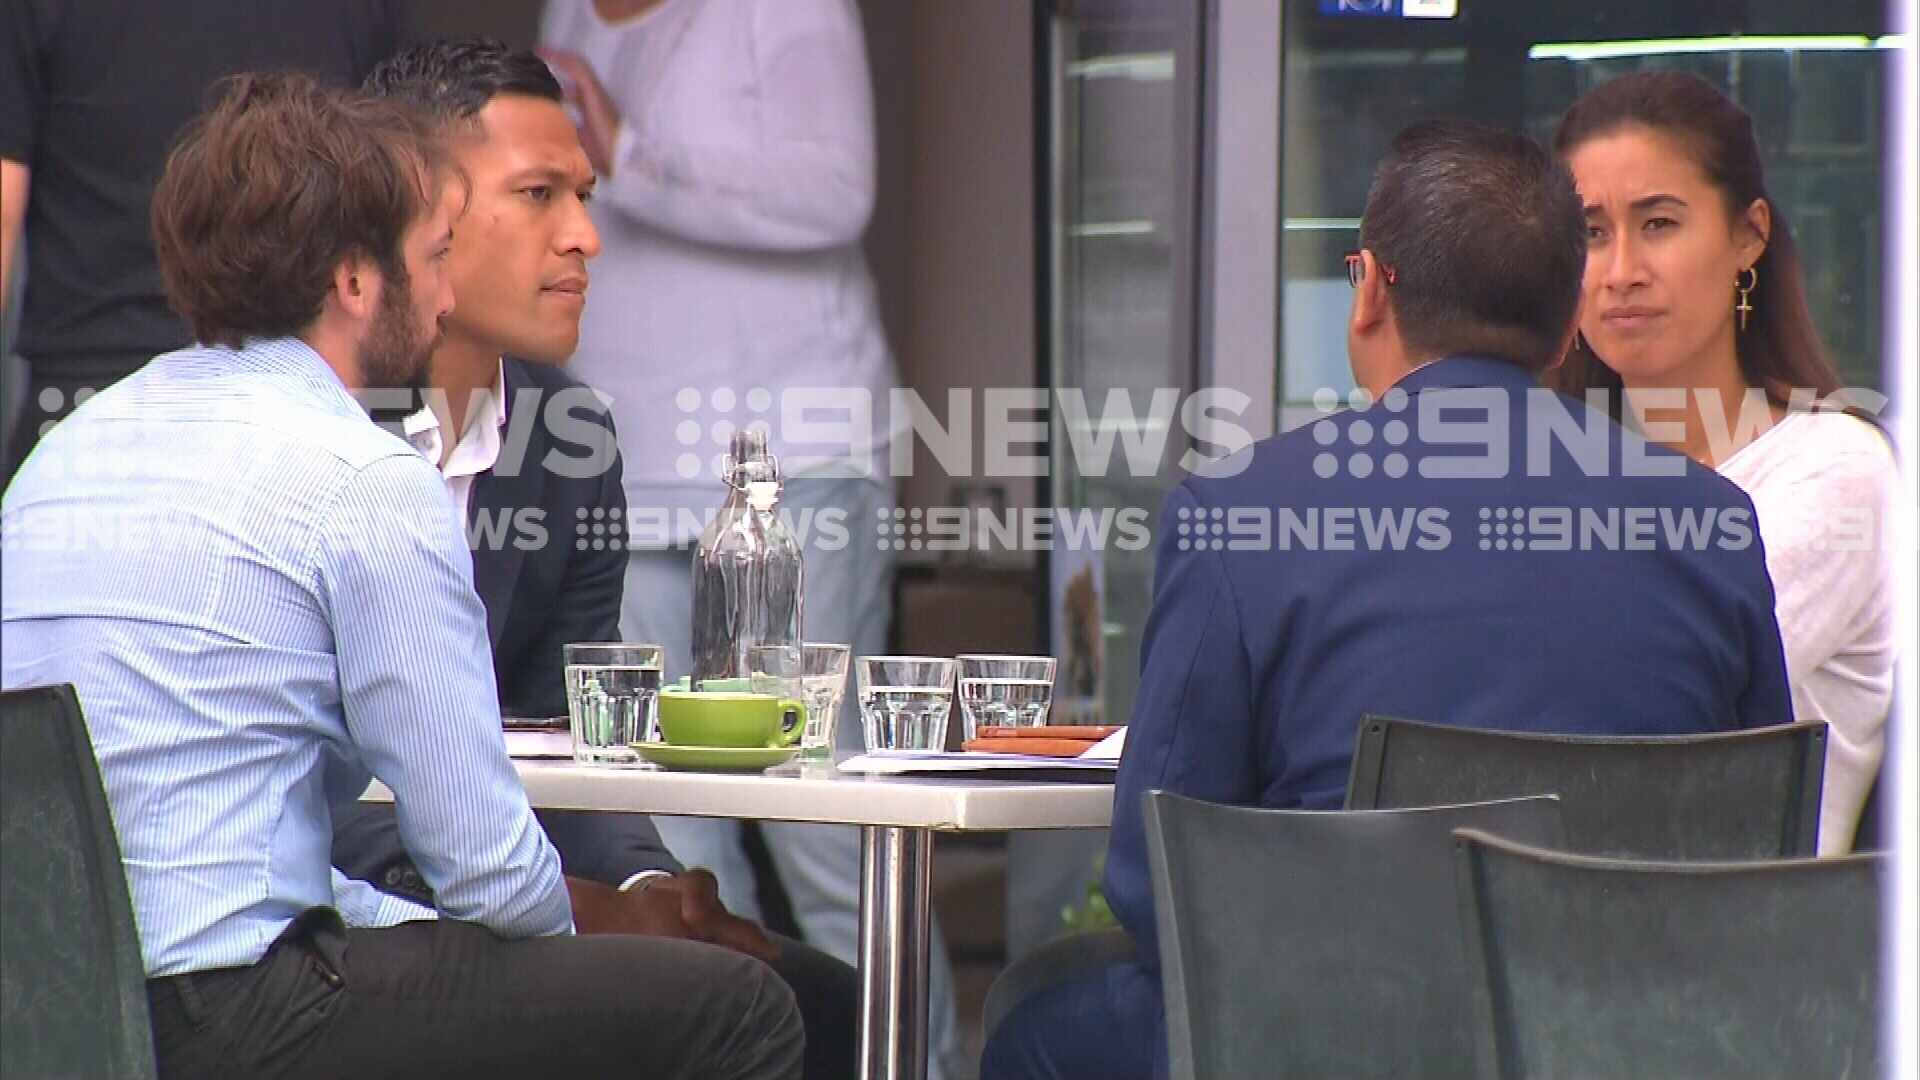 Israel Folau at a cafe with his wife maria and two associates.